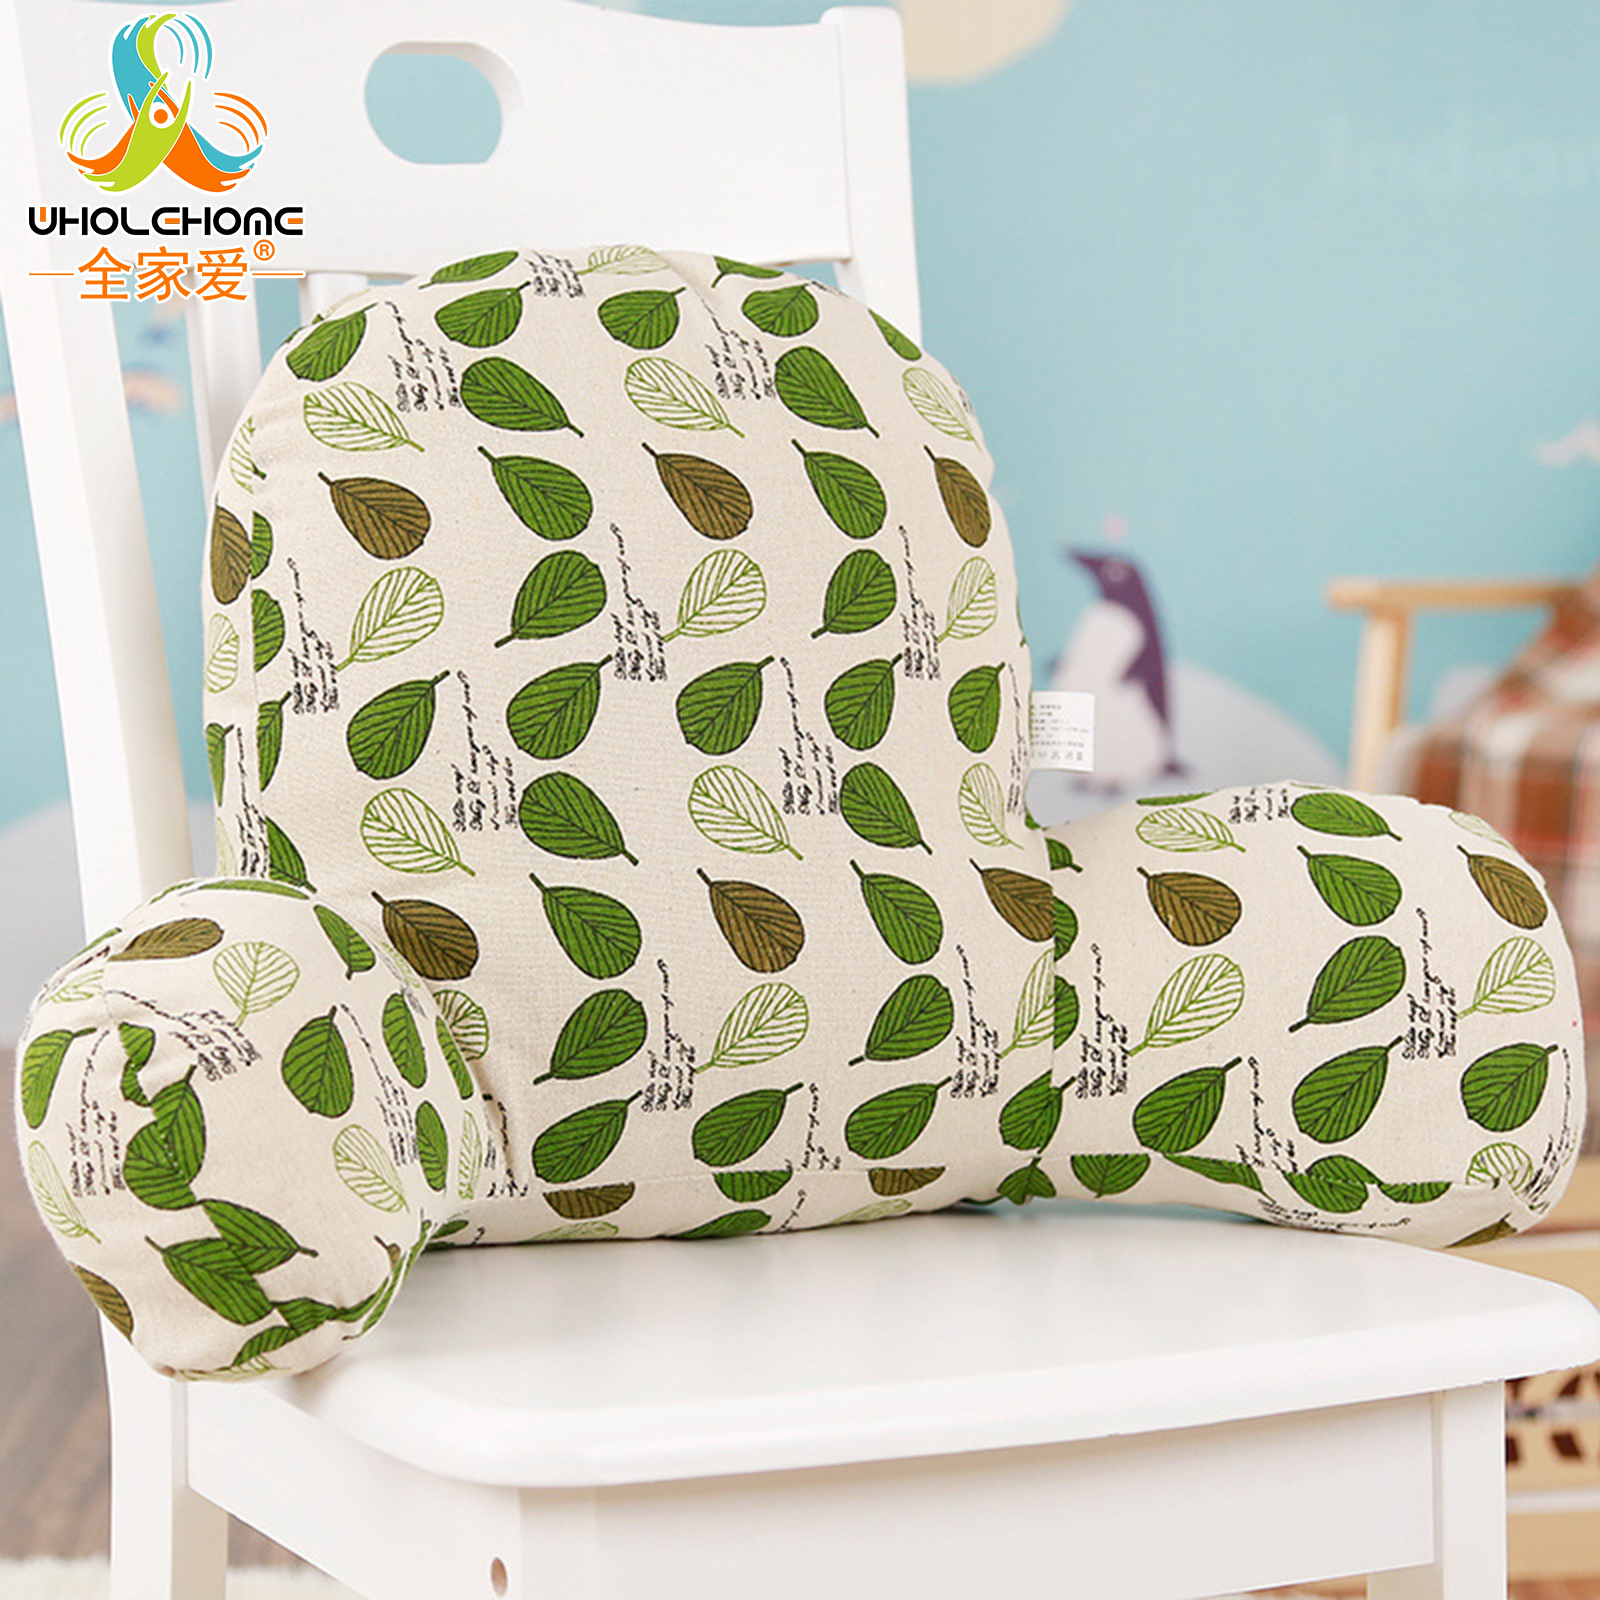 Home Backrest Cushion Decor 1 Piece Cotton Linen Arm Back Support Sofa Cushion with Washable Leaves Plaid Printed Pillow Decor ...